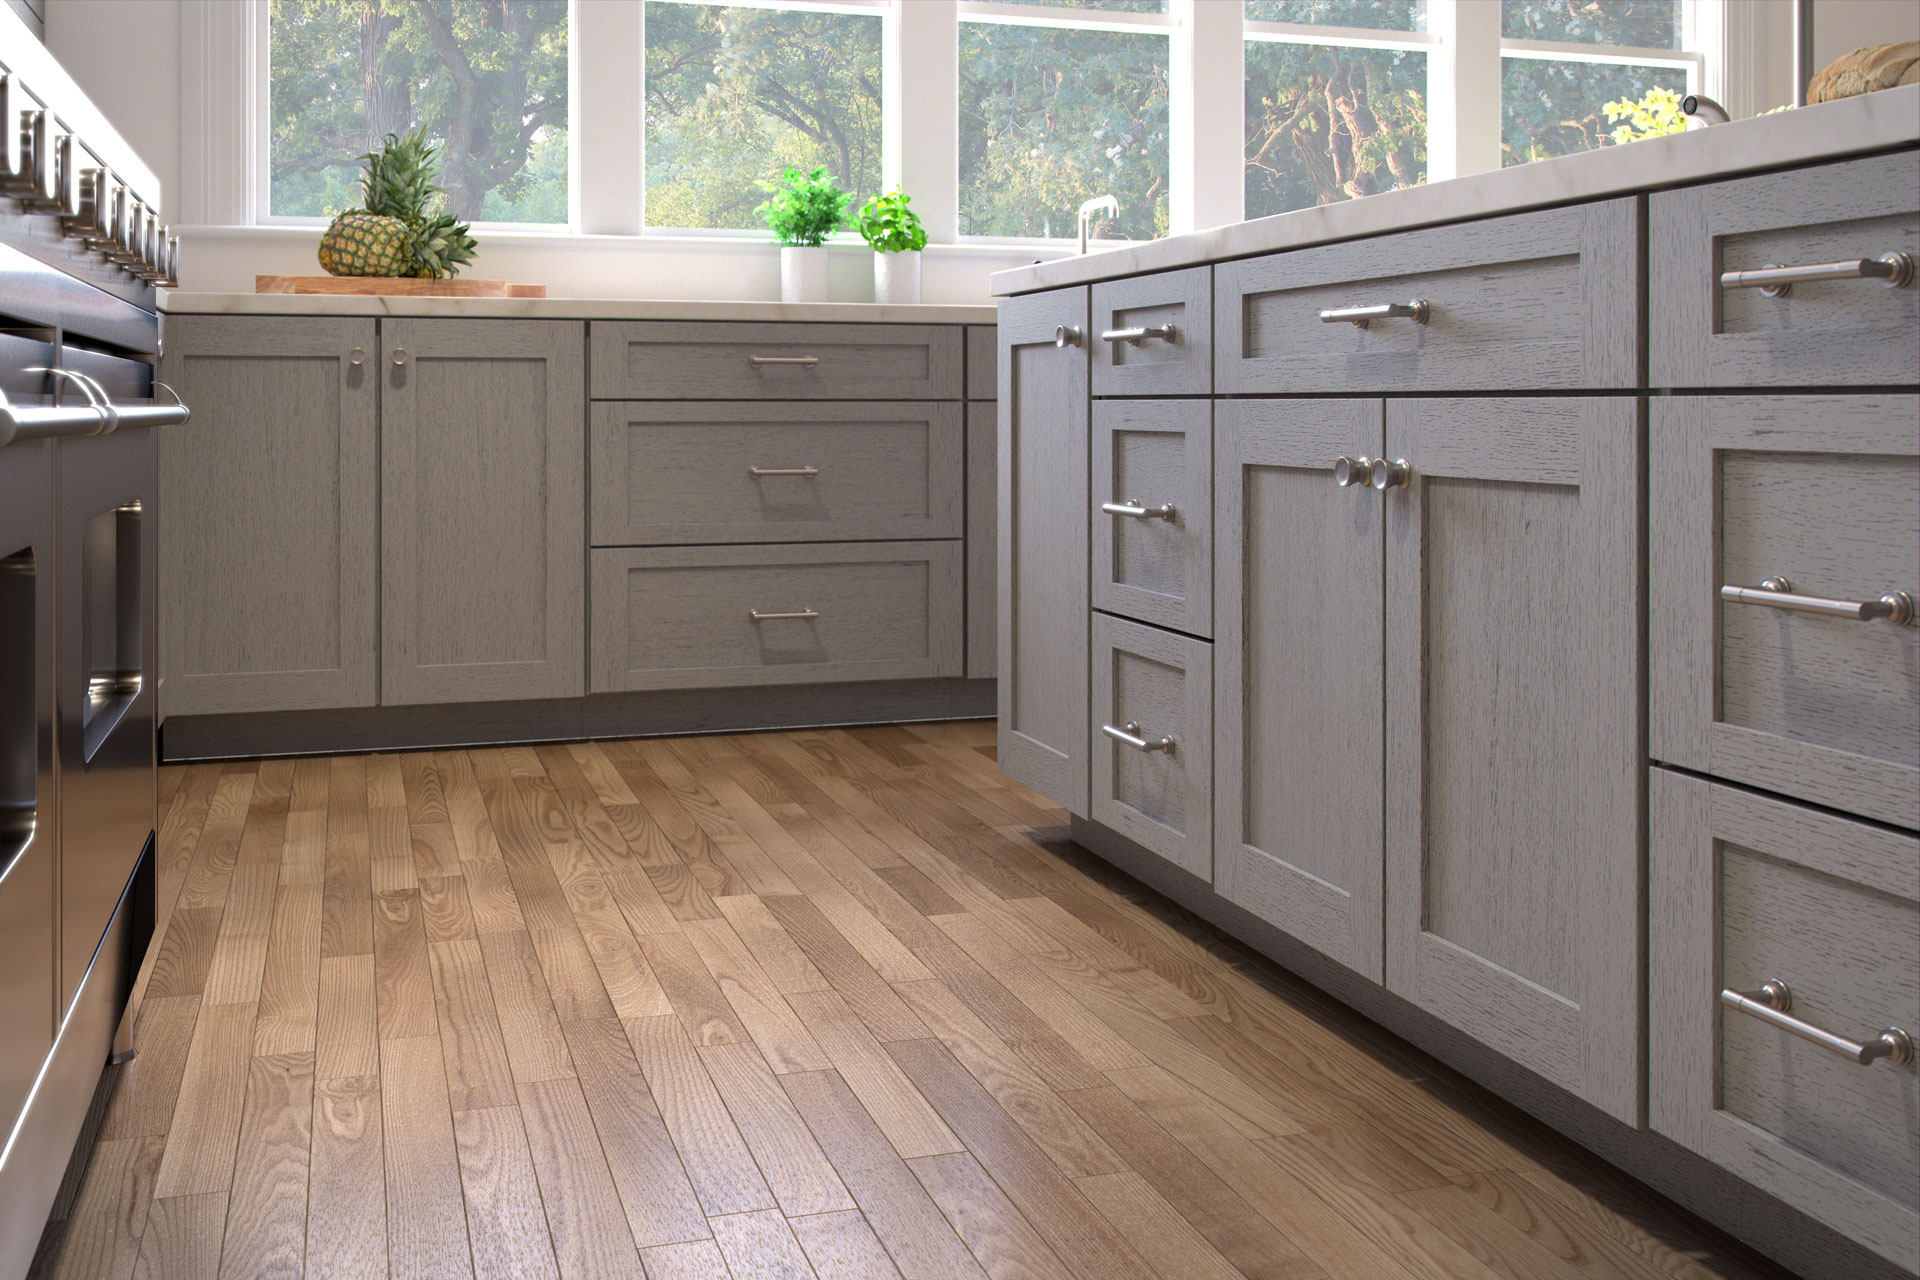 Nova Light Grey Forevermark Cabinetry - Light grey shaker cabinets